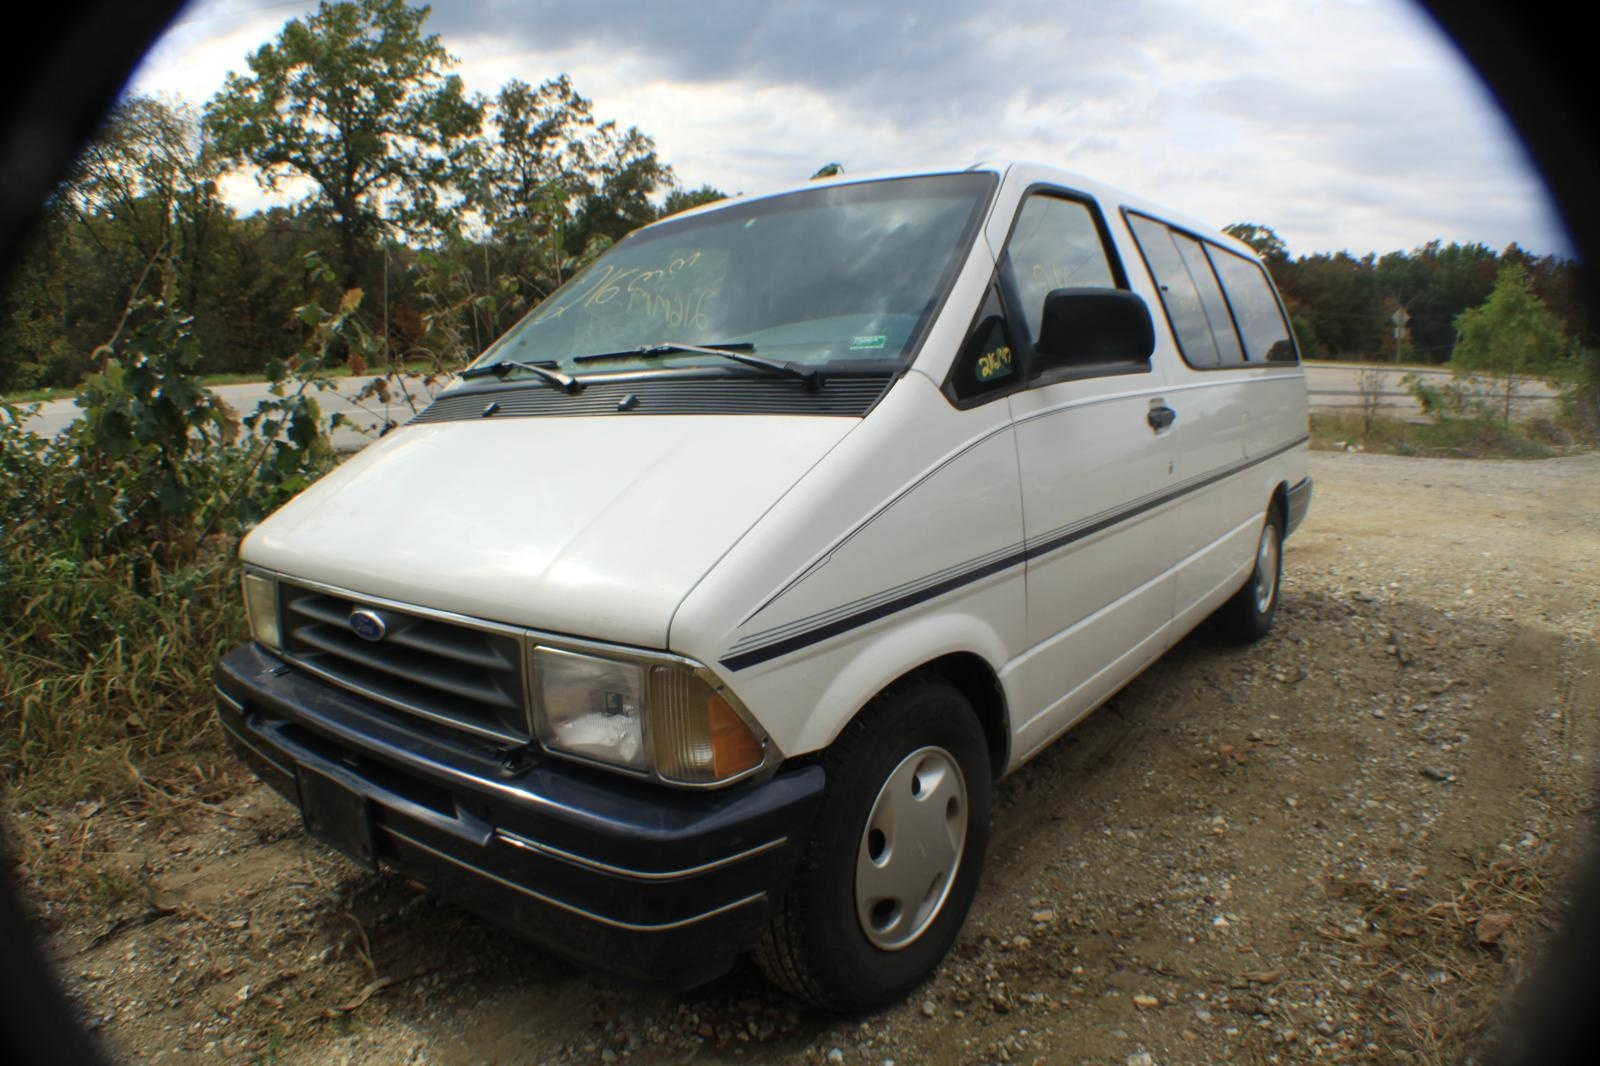 Ford Lincoln Of Franklin >> 1994 Ford Aerostar - Overview - CarGurus